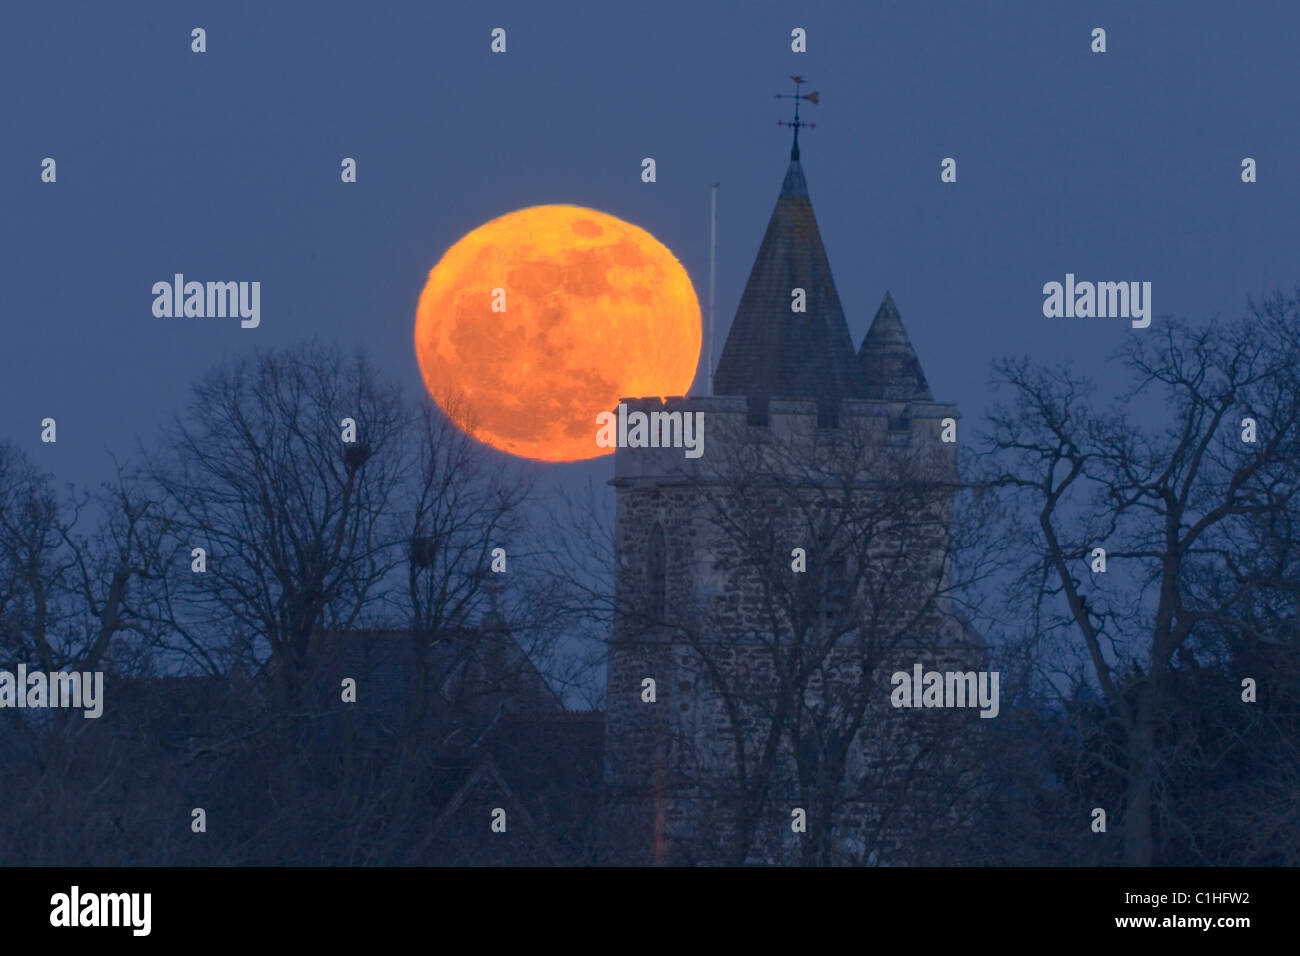 Super moon rise over Warfield Church, Warfield, Bracknell, Berkshire, UK Stock Photo